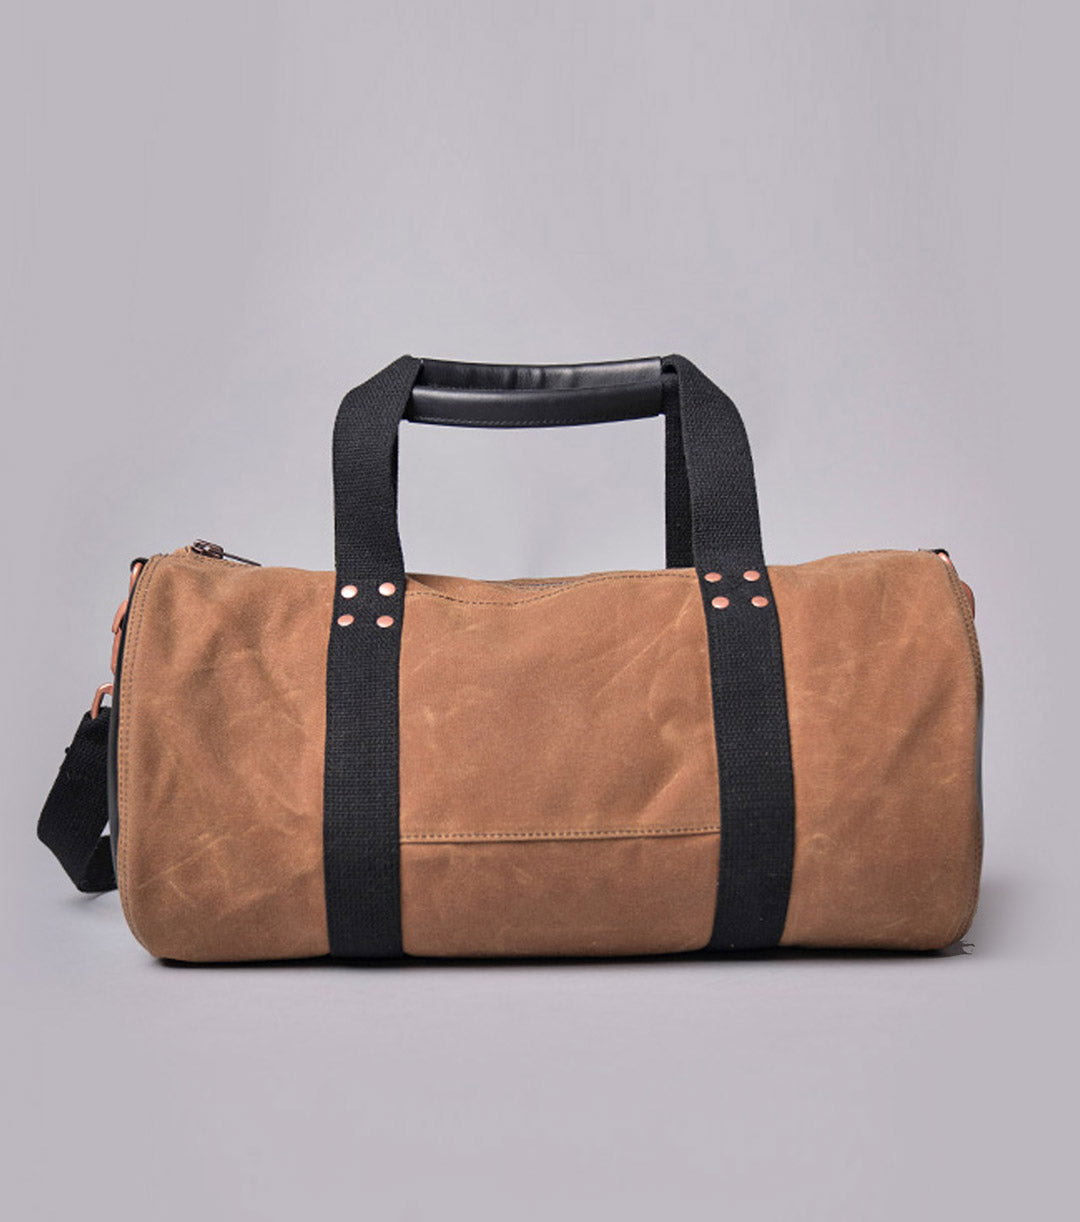 Dwarf Duffel (Brown/Black)